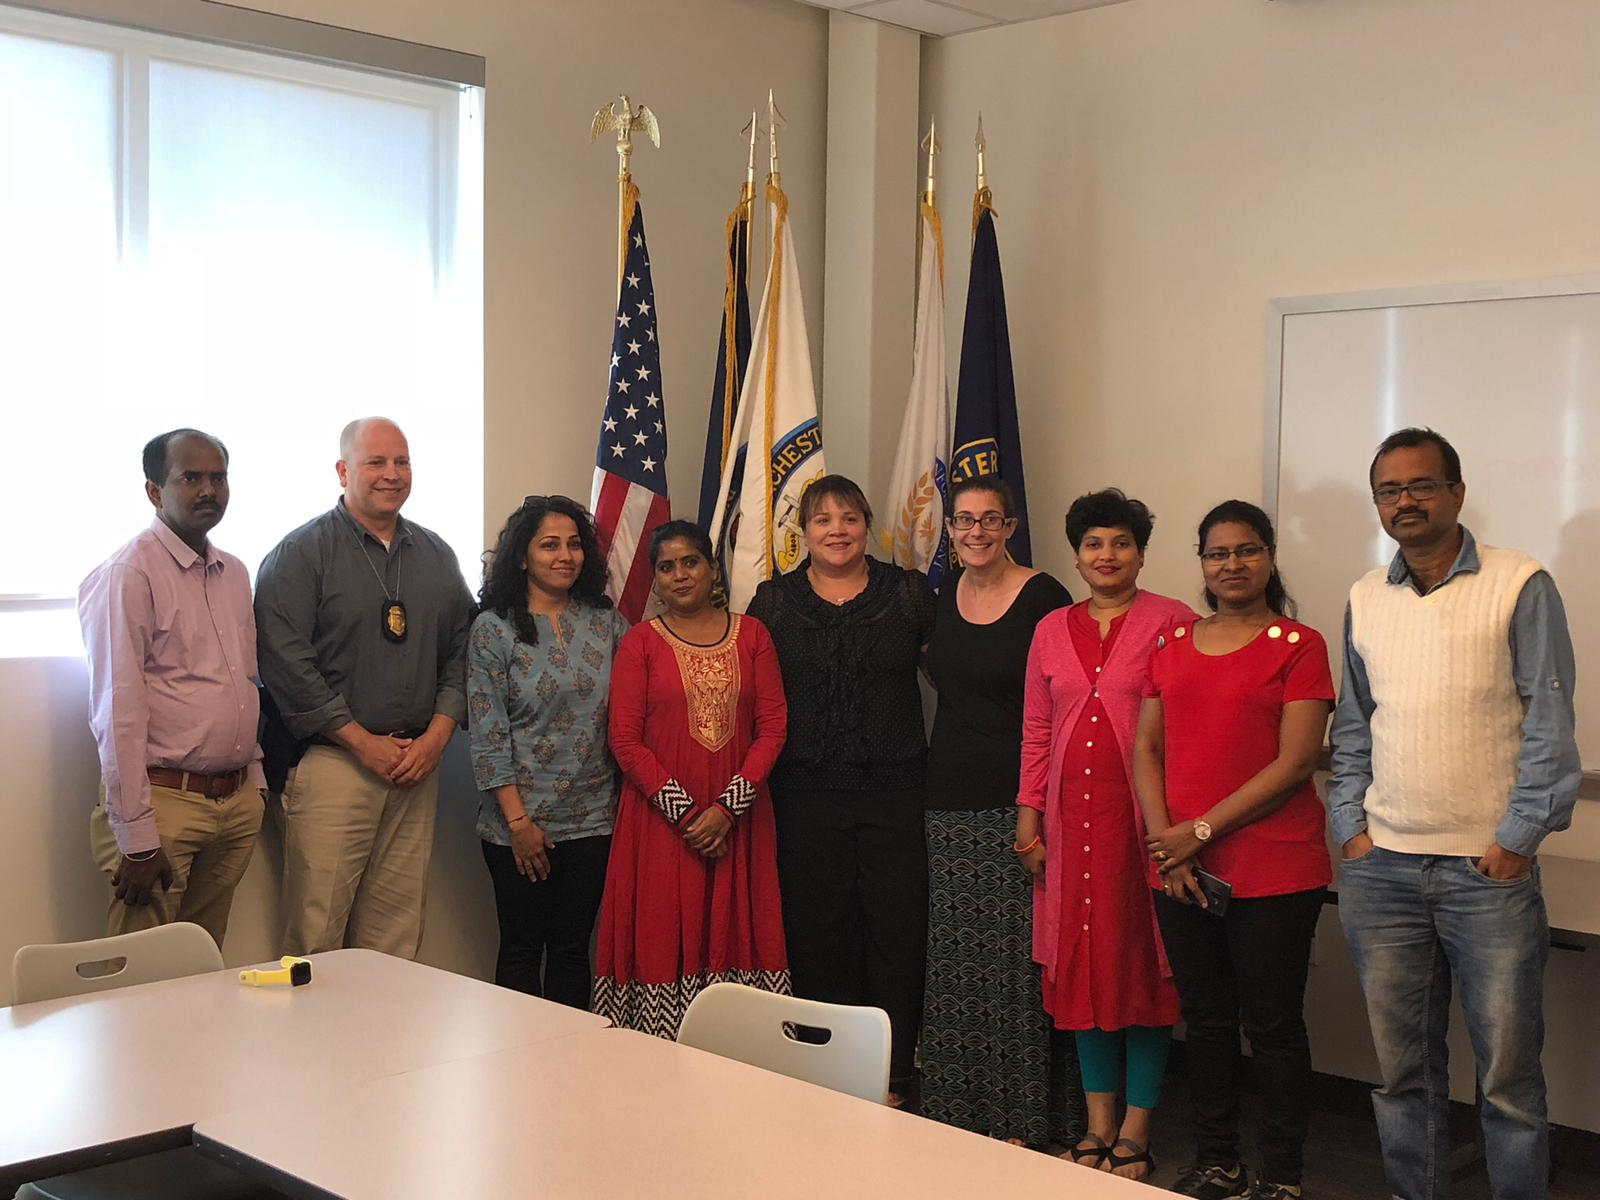 Our Telugu interpreters interpreting for a group of international visitors from India in New Hampshire